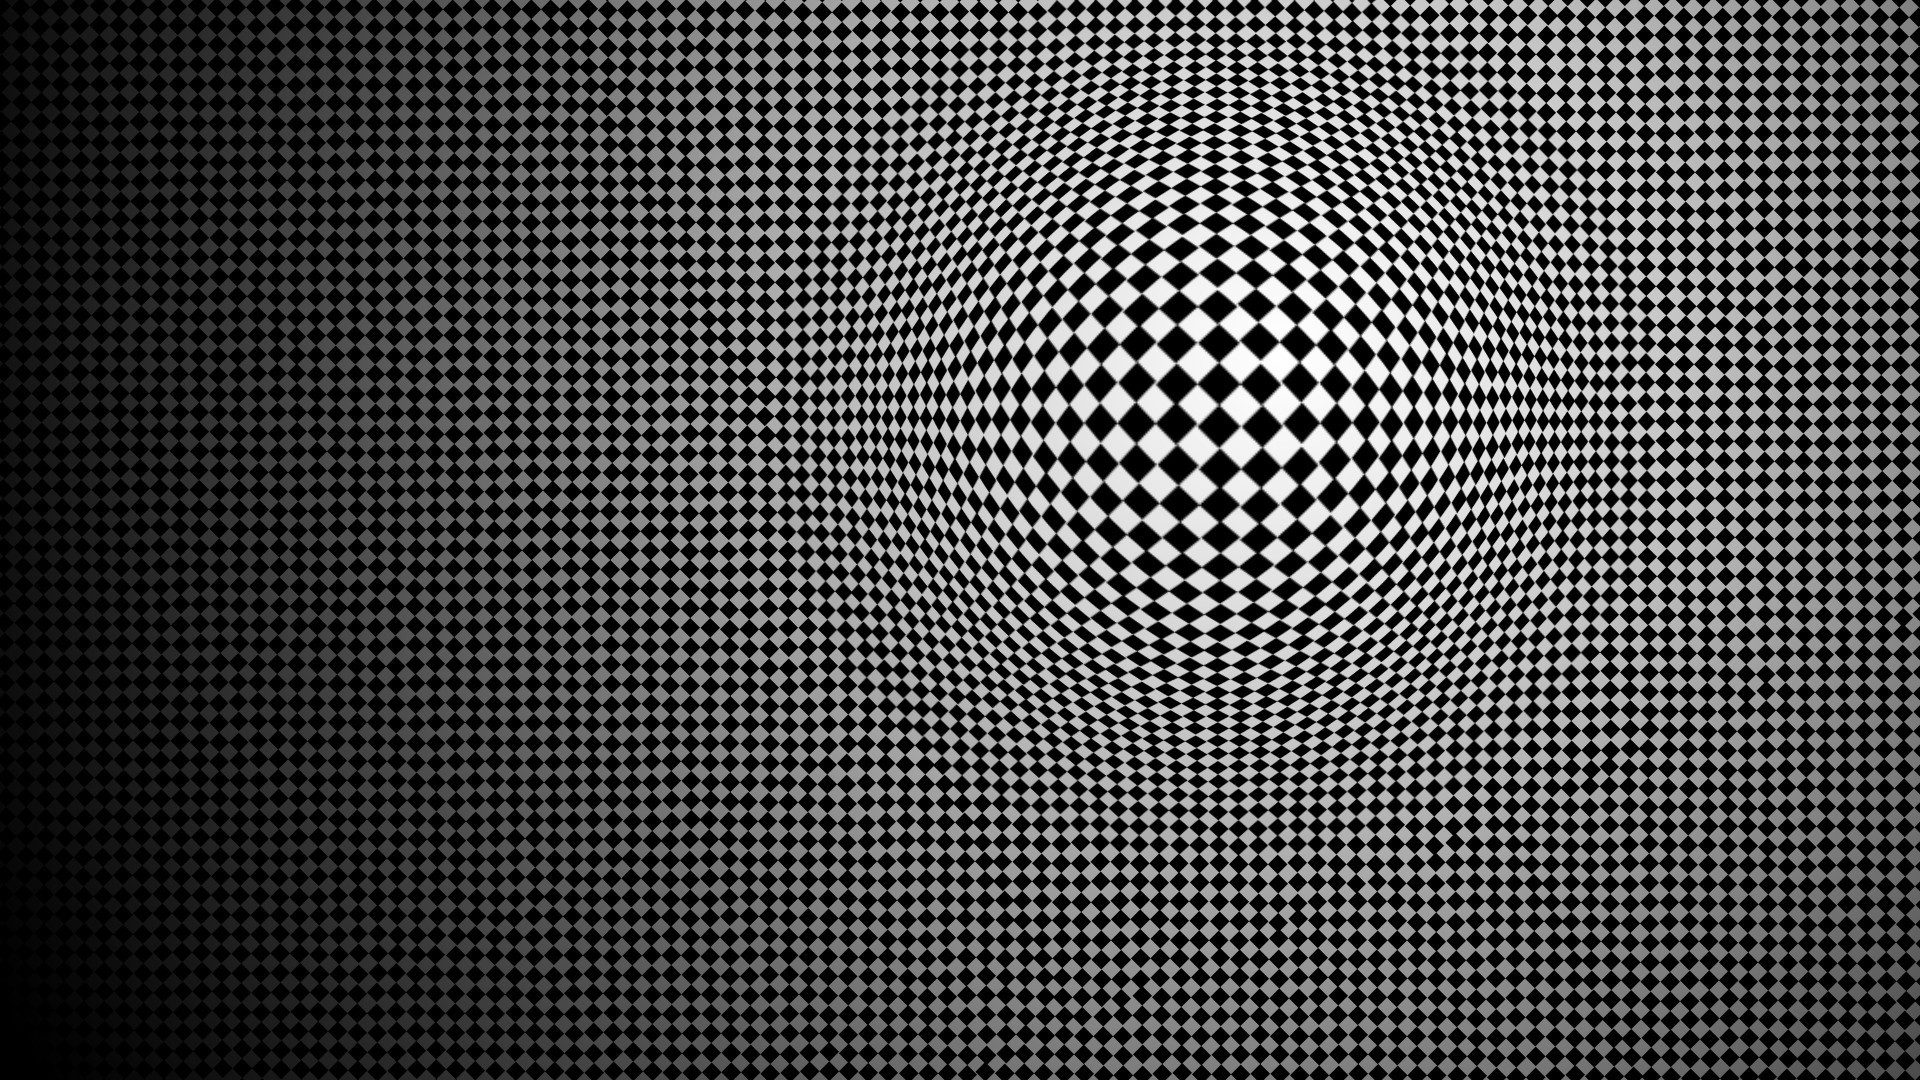 2048x1152 Moving Optical Illusions Wallpaper Hd Free Android Application